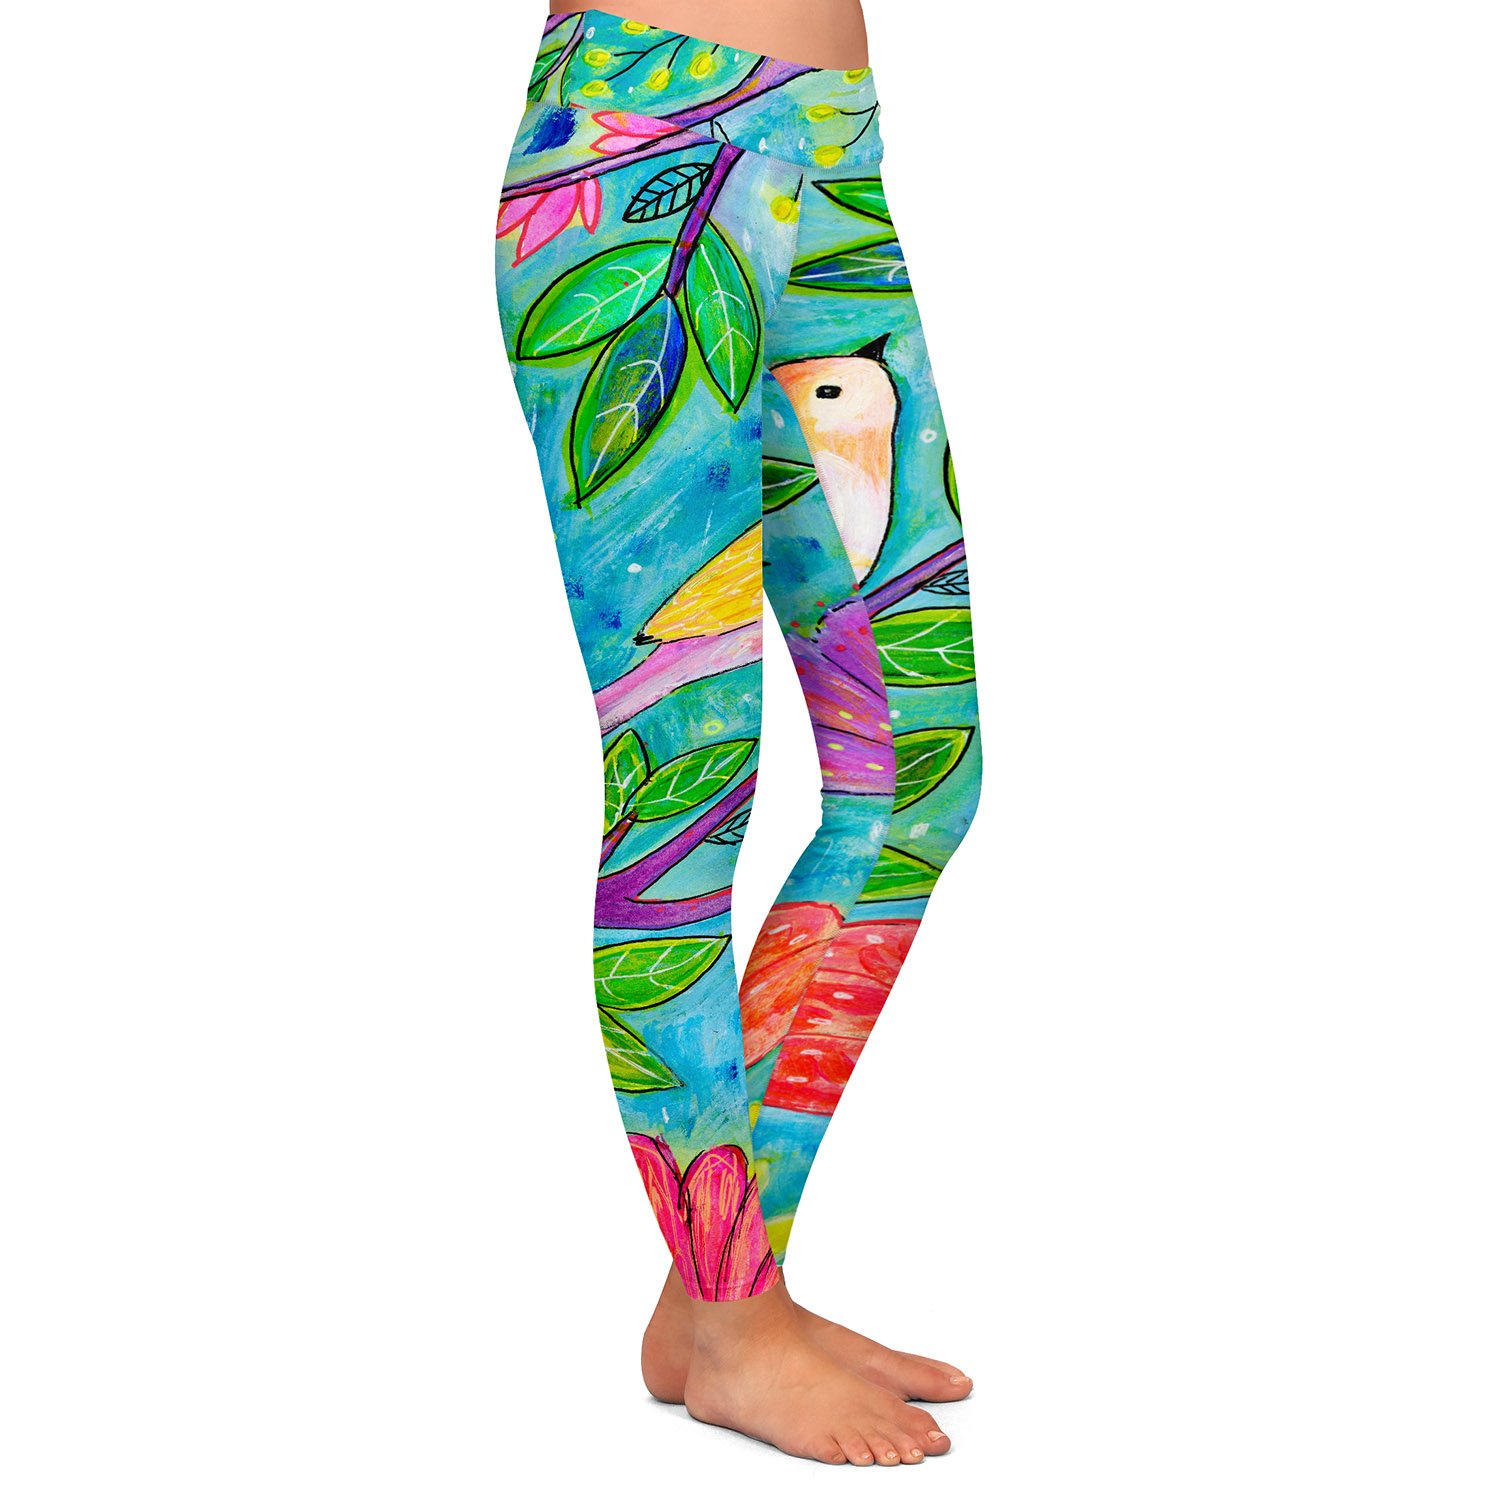 Athletic Yoga Leggings from DiaNoche Designs by Sascalia Radiance